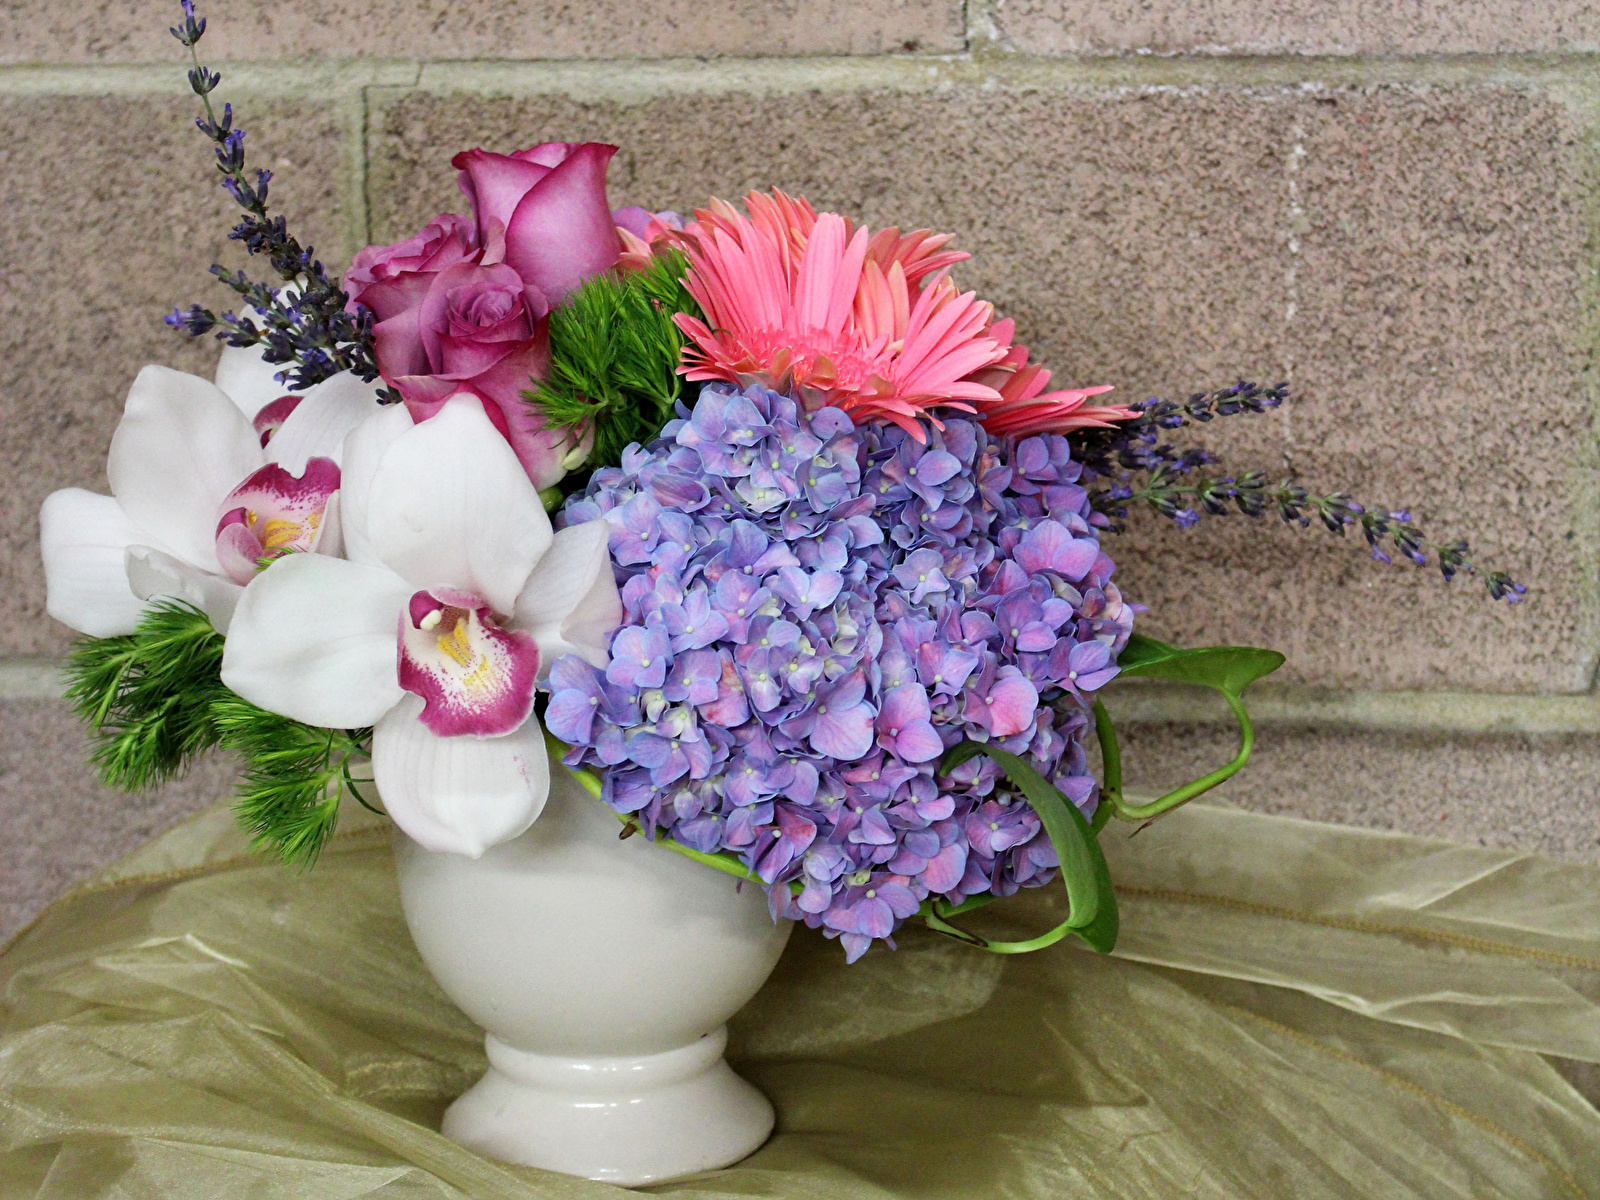 https://s1.1zoom.me/b5050/794/Bouquets_Orchid_Hydrangea_Roses_553518_1600x1200.jpg